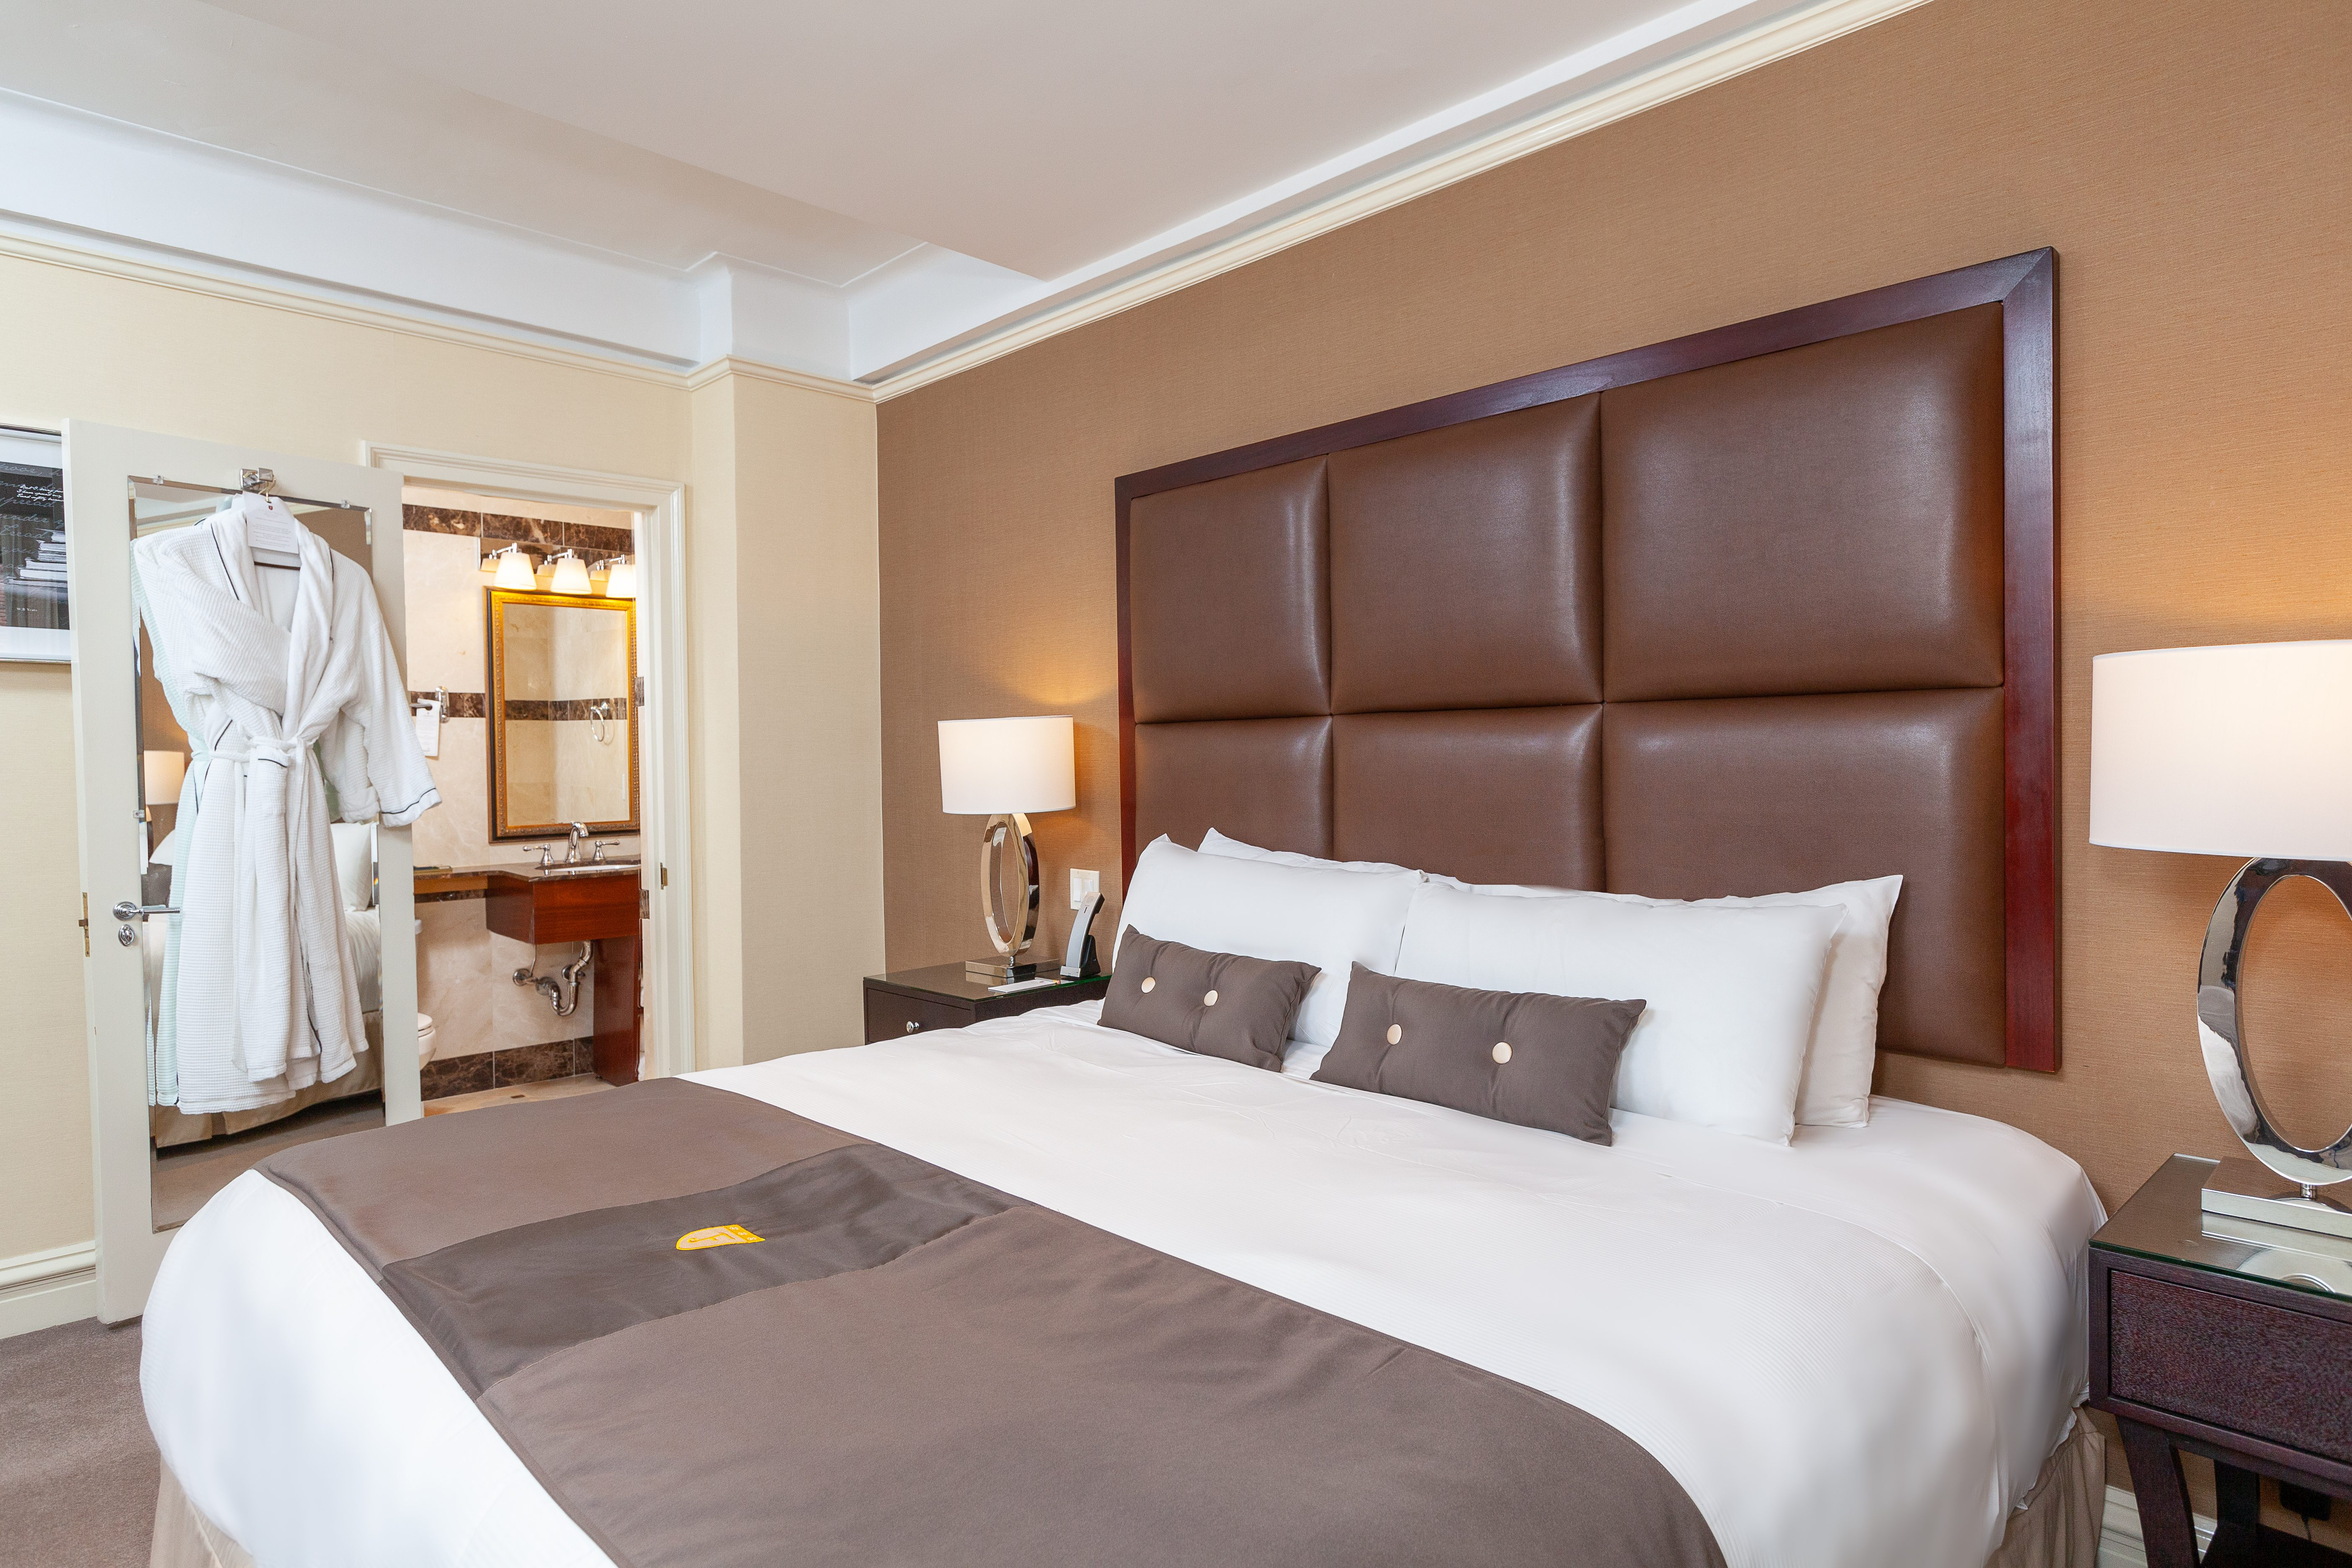 Double bed with two pillows, white sheets and chocolate leather headboard next to a side table and open door to the bathroom